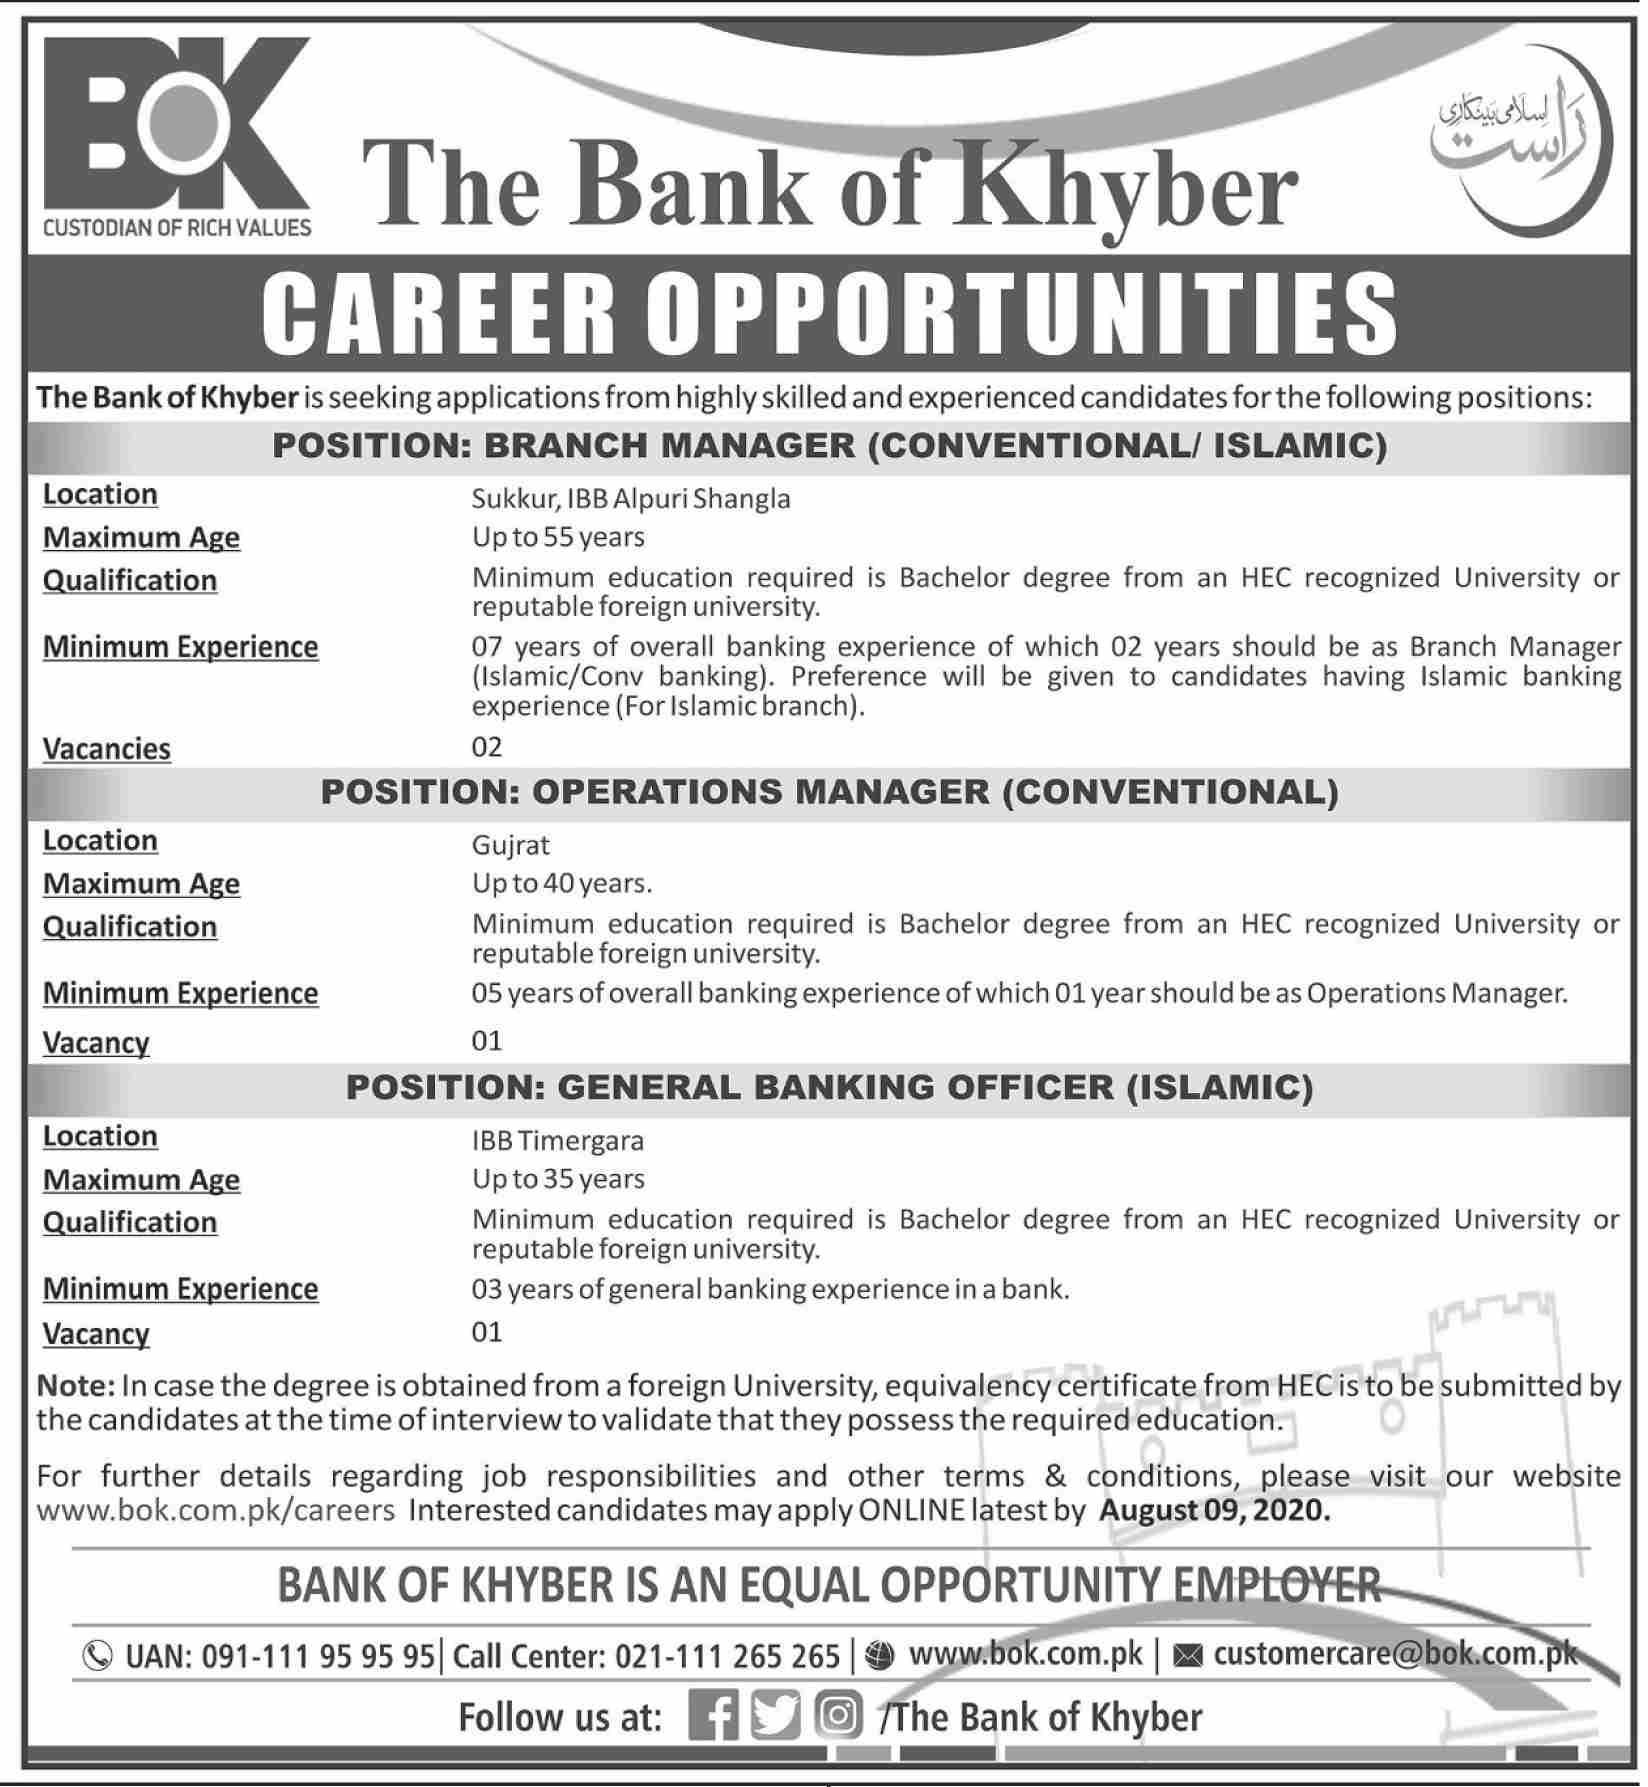 Branch Manager (Conventional/ Islamic) The Bank of Khyber Jobs July 26, 2020